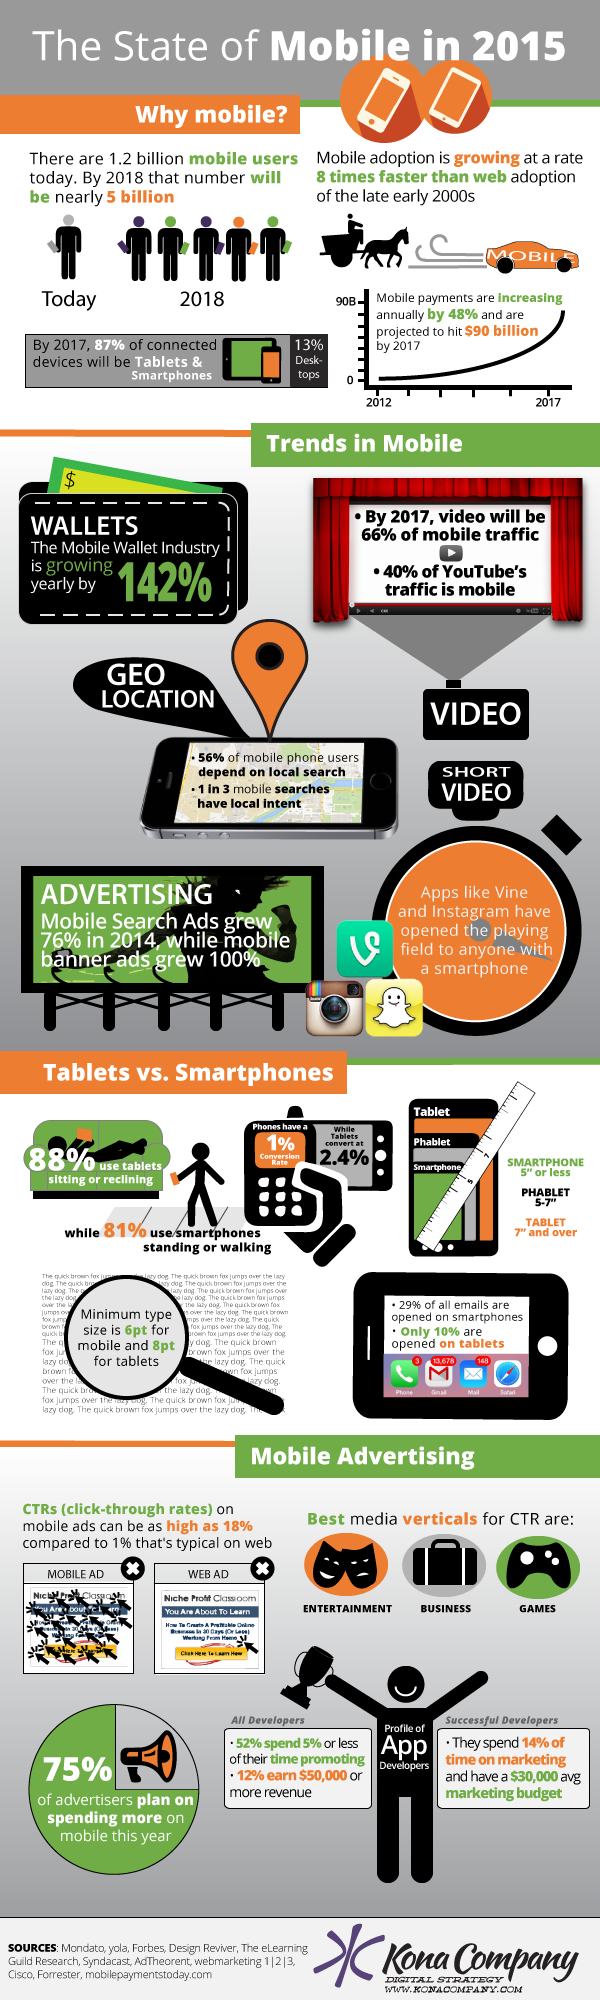 The State Of Mobile In 2015 Infographic Kona Company